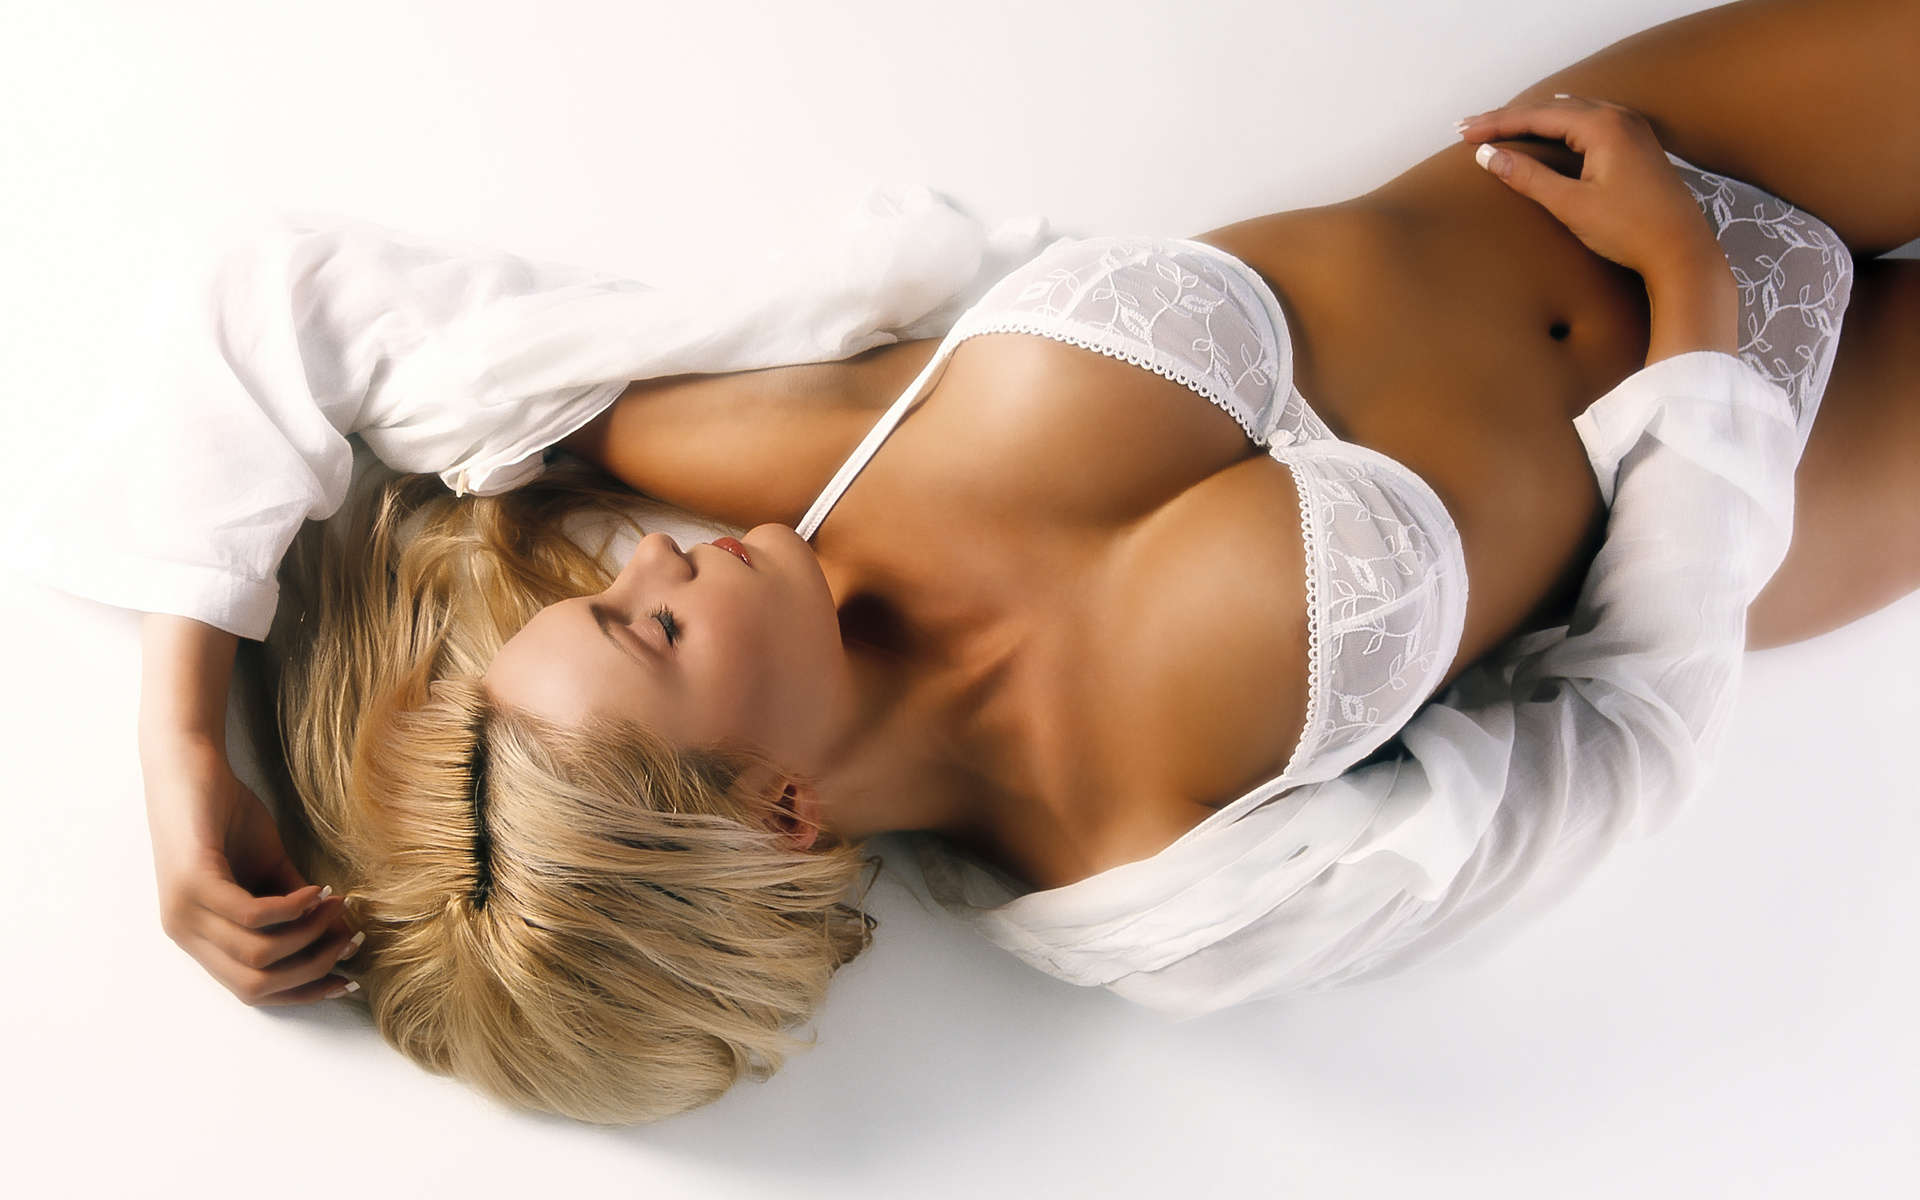 sex-hot-blondes-naked-top-sex-woman